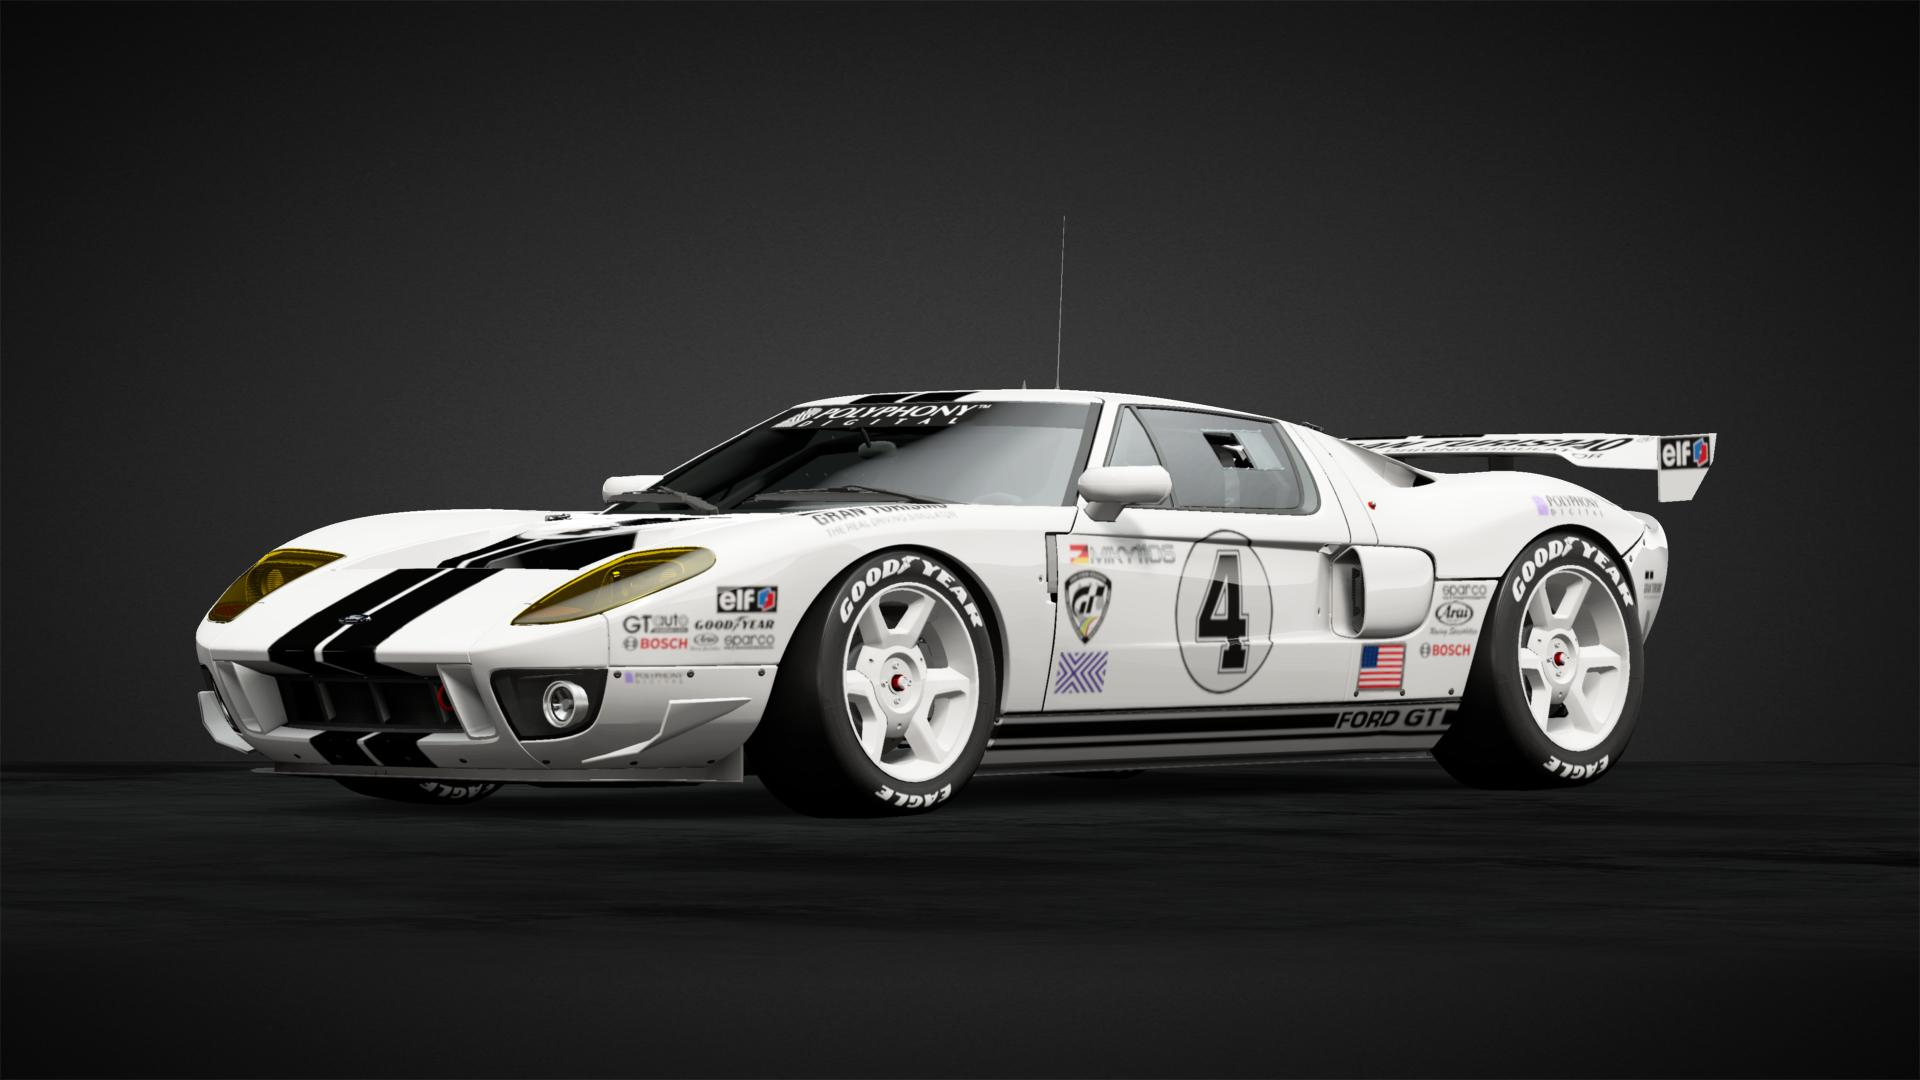 Ford GT LM Spec  II Gr 3 #4 - Car Livery by Miky1106